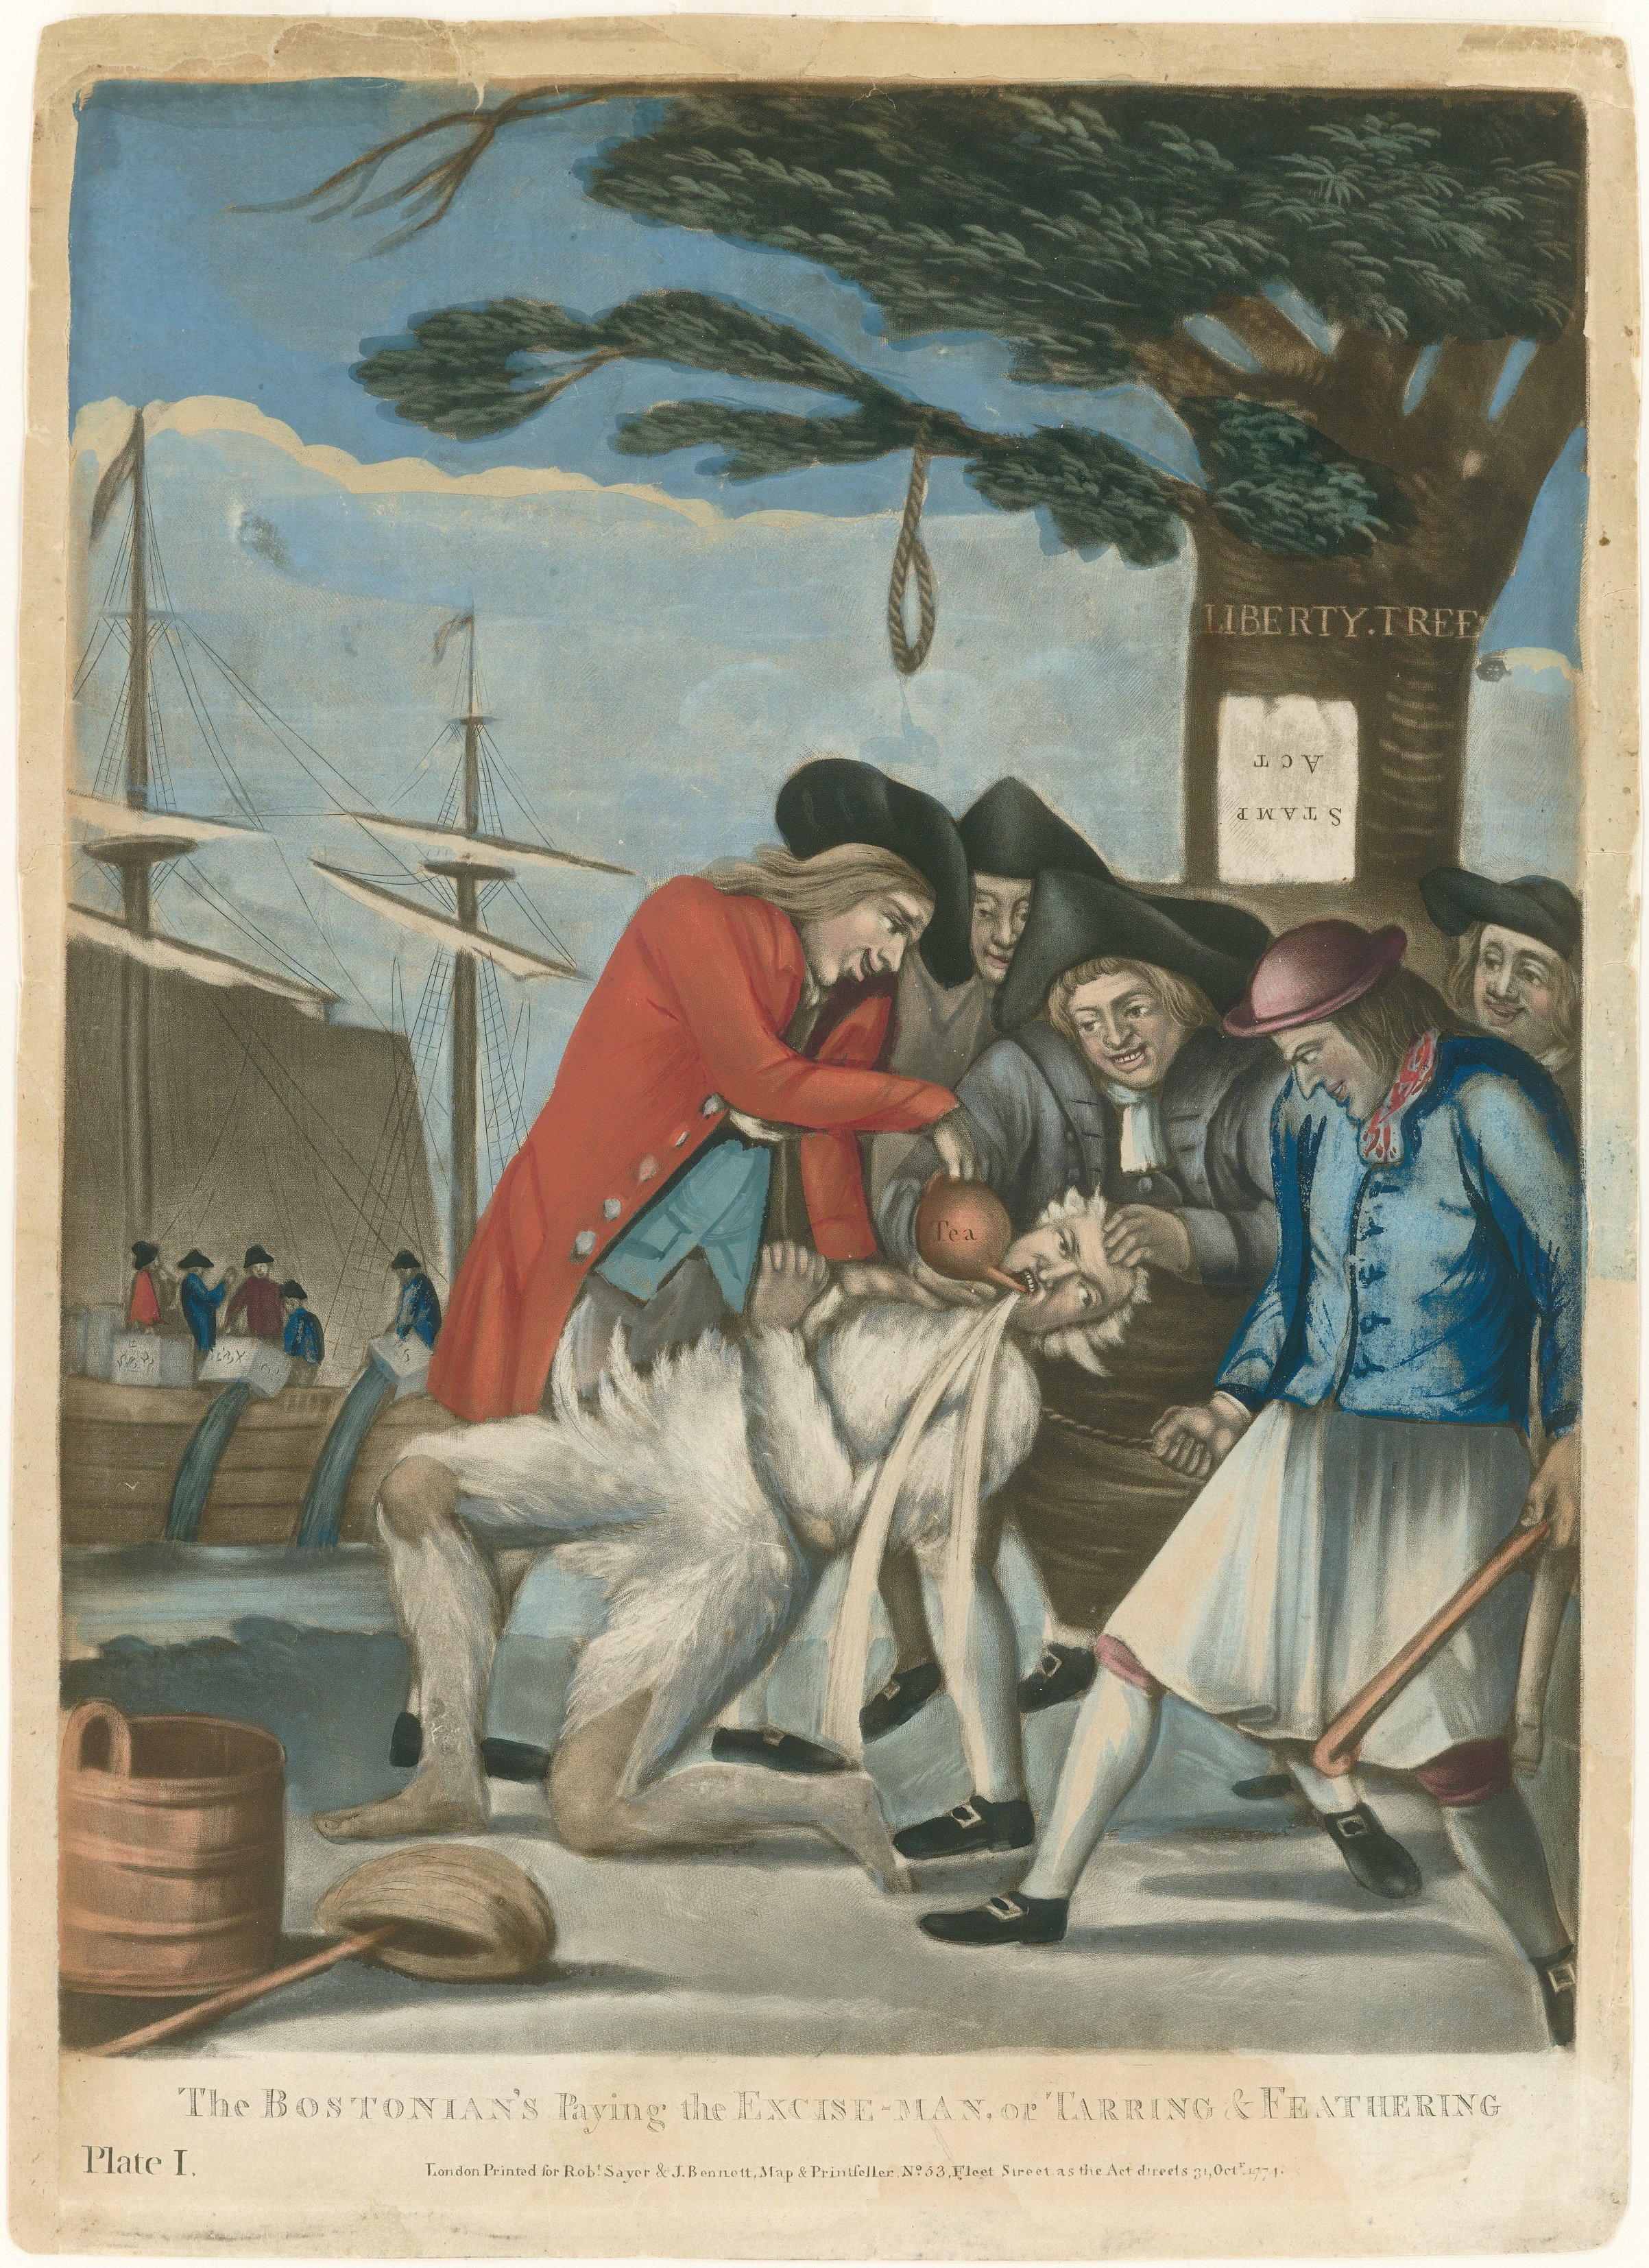 external image Philip_Dawe_%28attributed%29,_The_Bostonians_Paying_the_Excise-man,_or_Tarring_and_Feathering_%281774%29_-_02.jpg